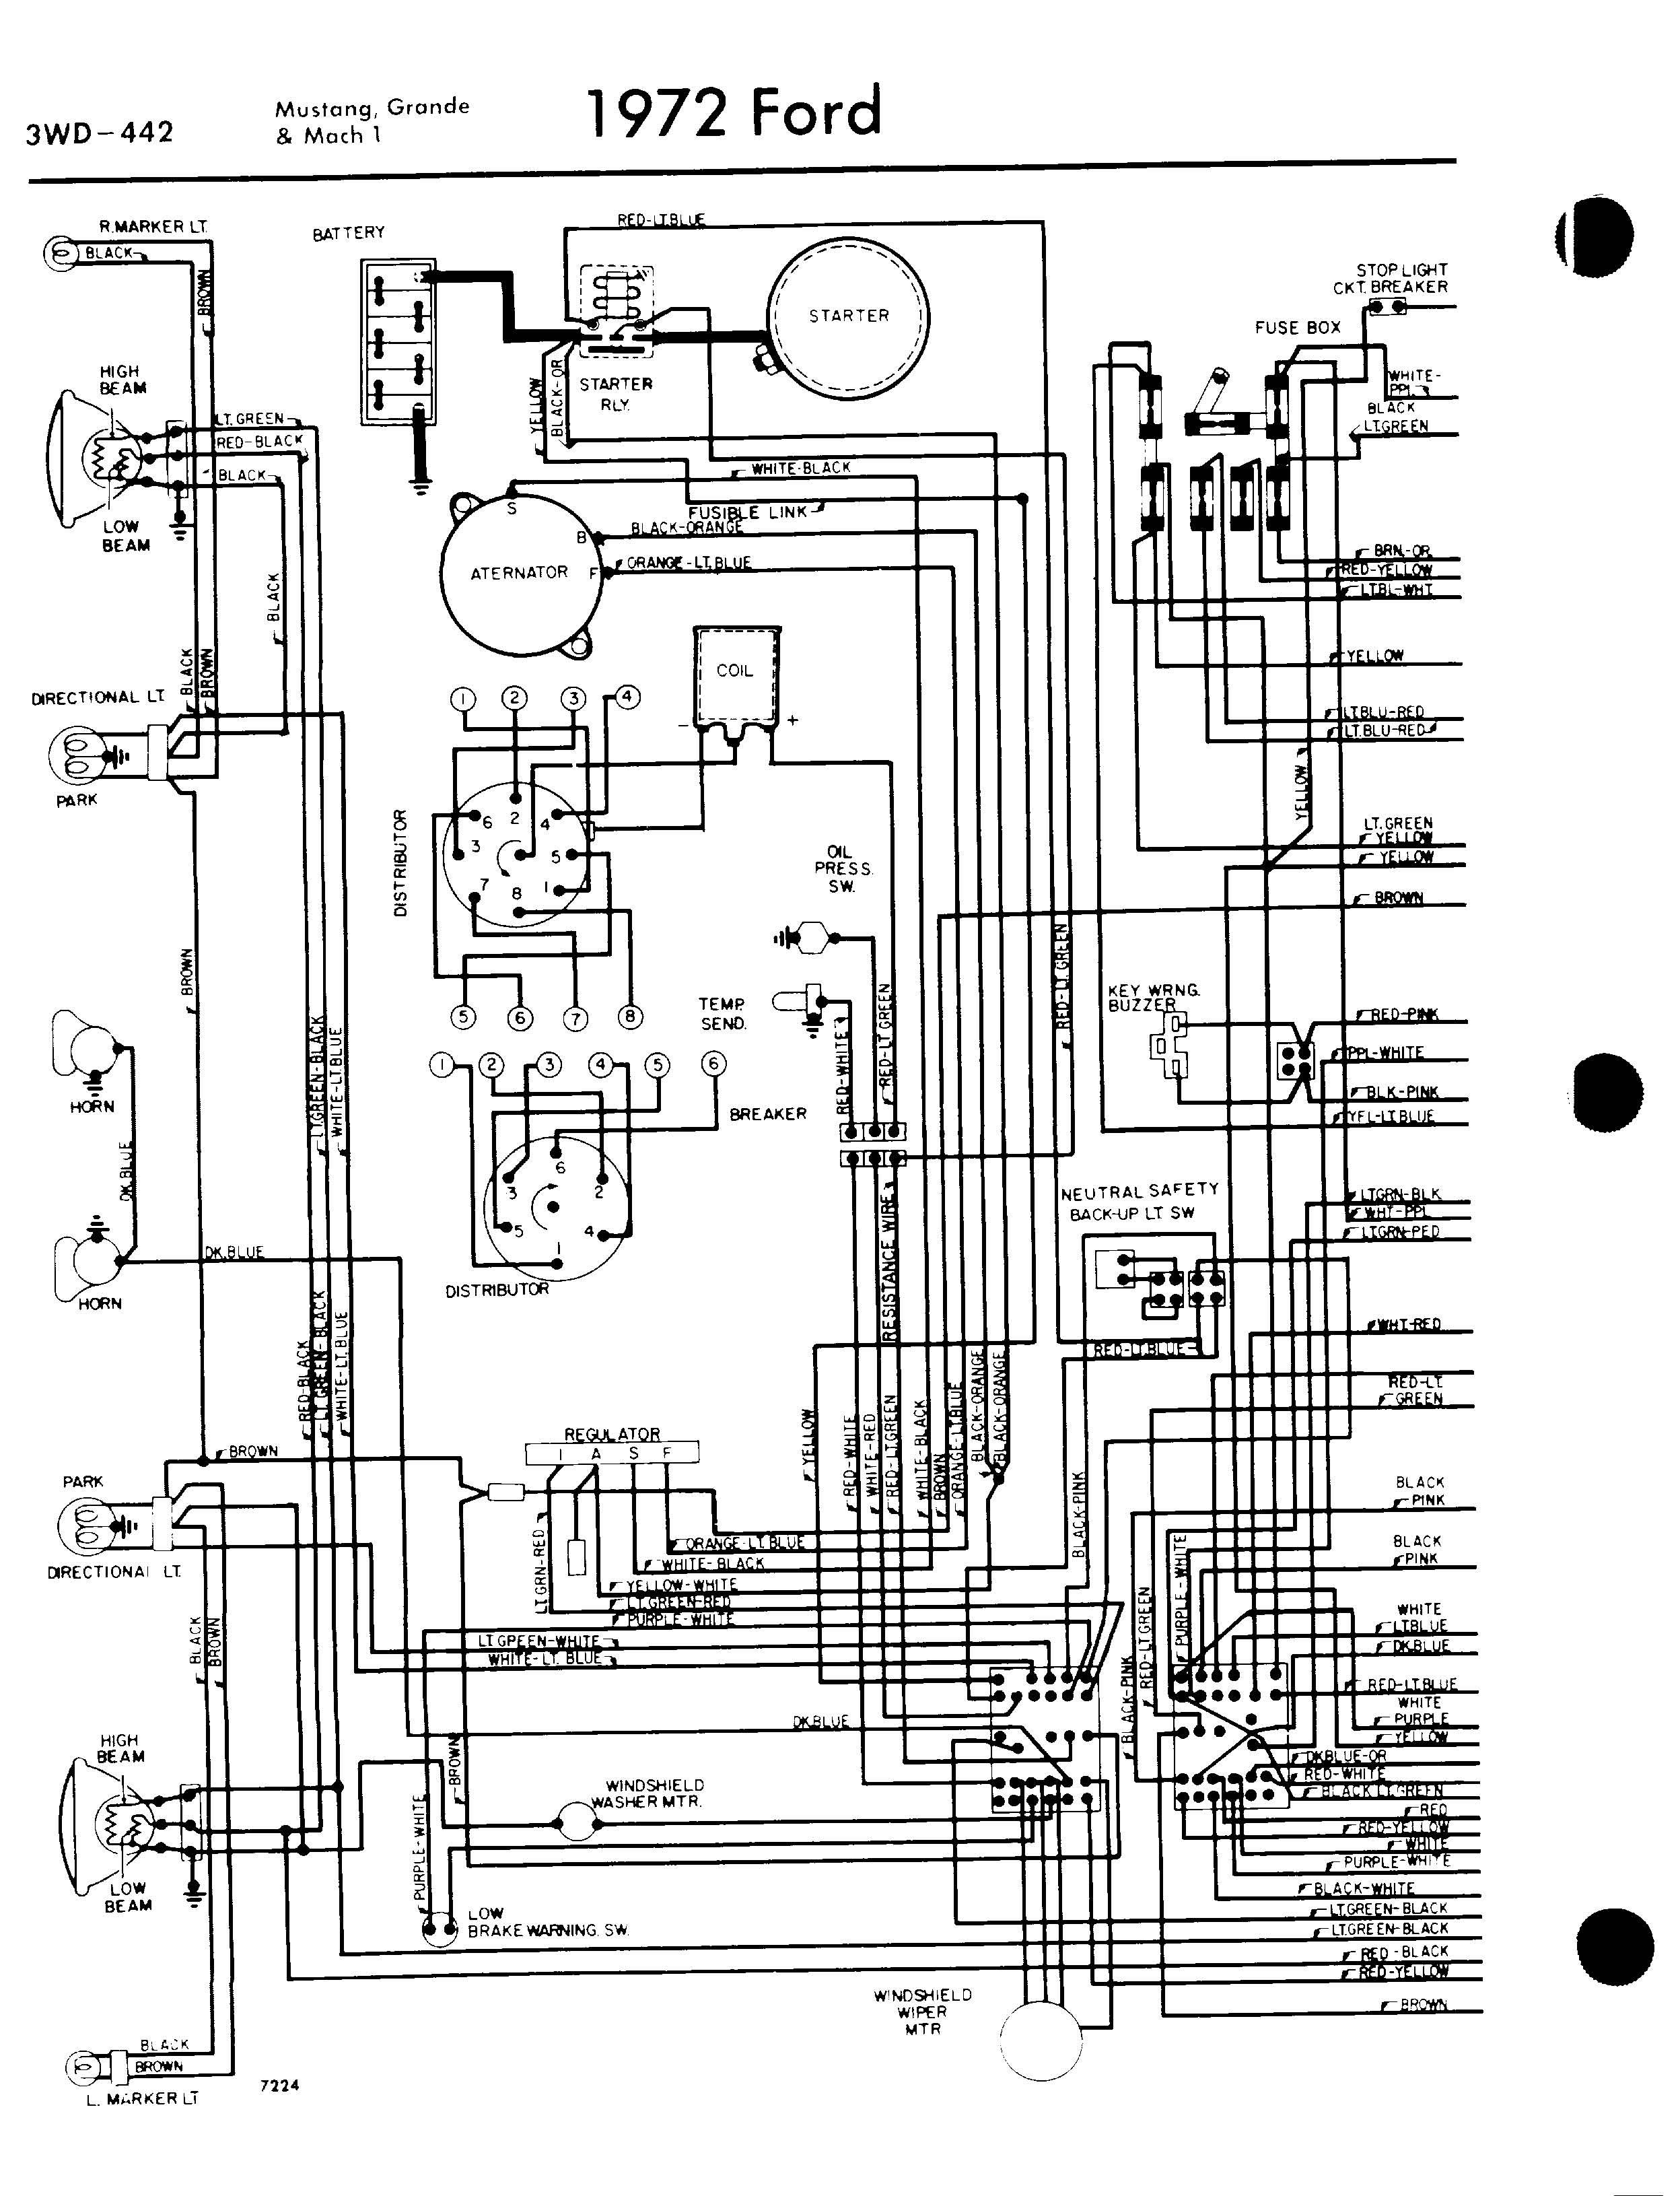 1997 ford mustang wiring diagram 1997 mustang headlight wiring wiring diagram  1997 mustang headlight wiring wiring